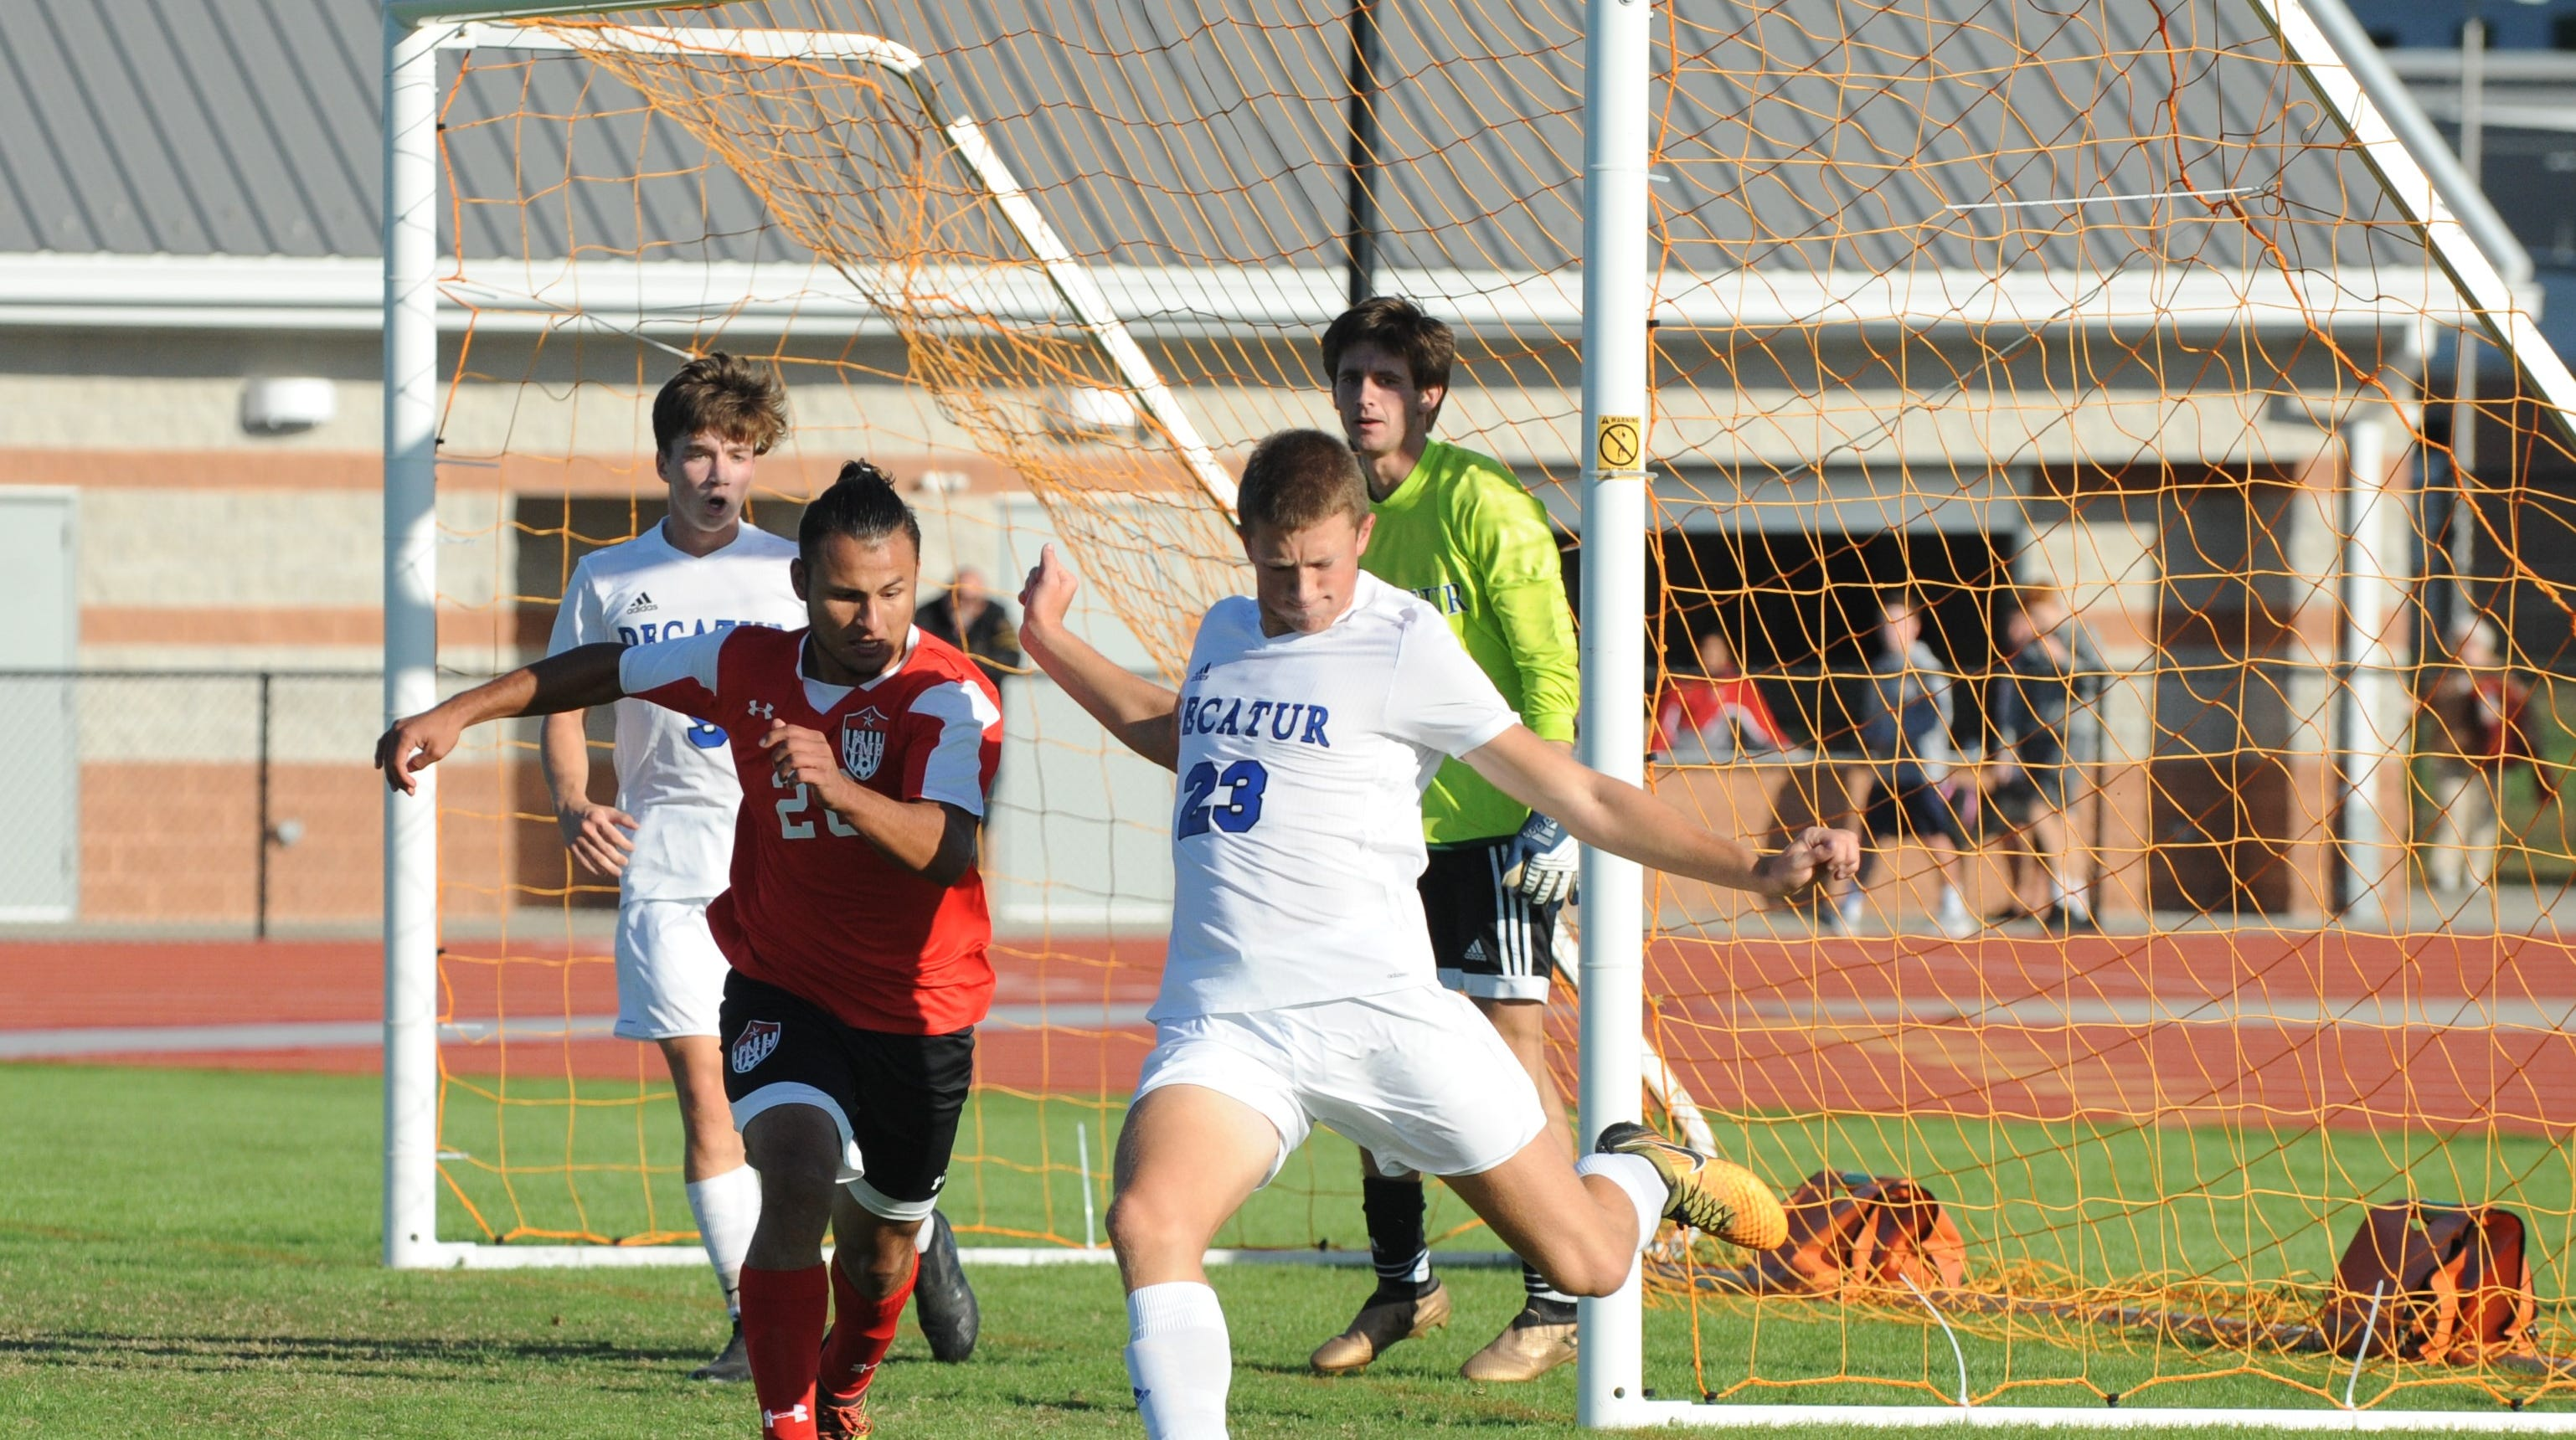 Decatur's Drew Haueisen tries to clear the ball from the goal against Bennett in Bayside South soccer action Oct. 17, 2018.